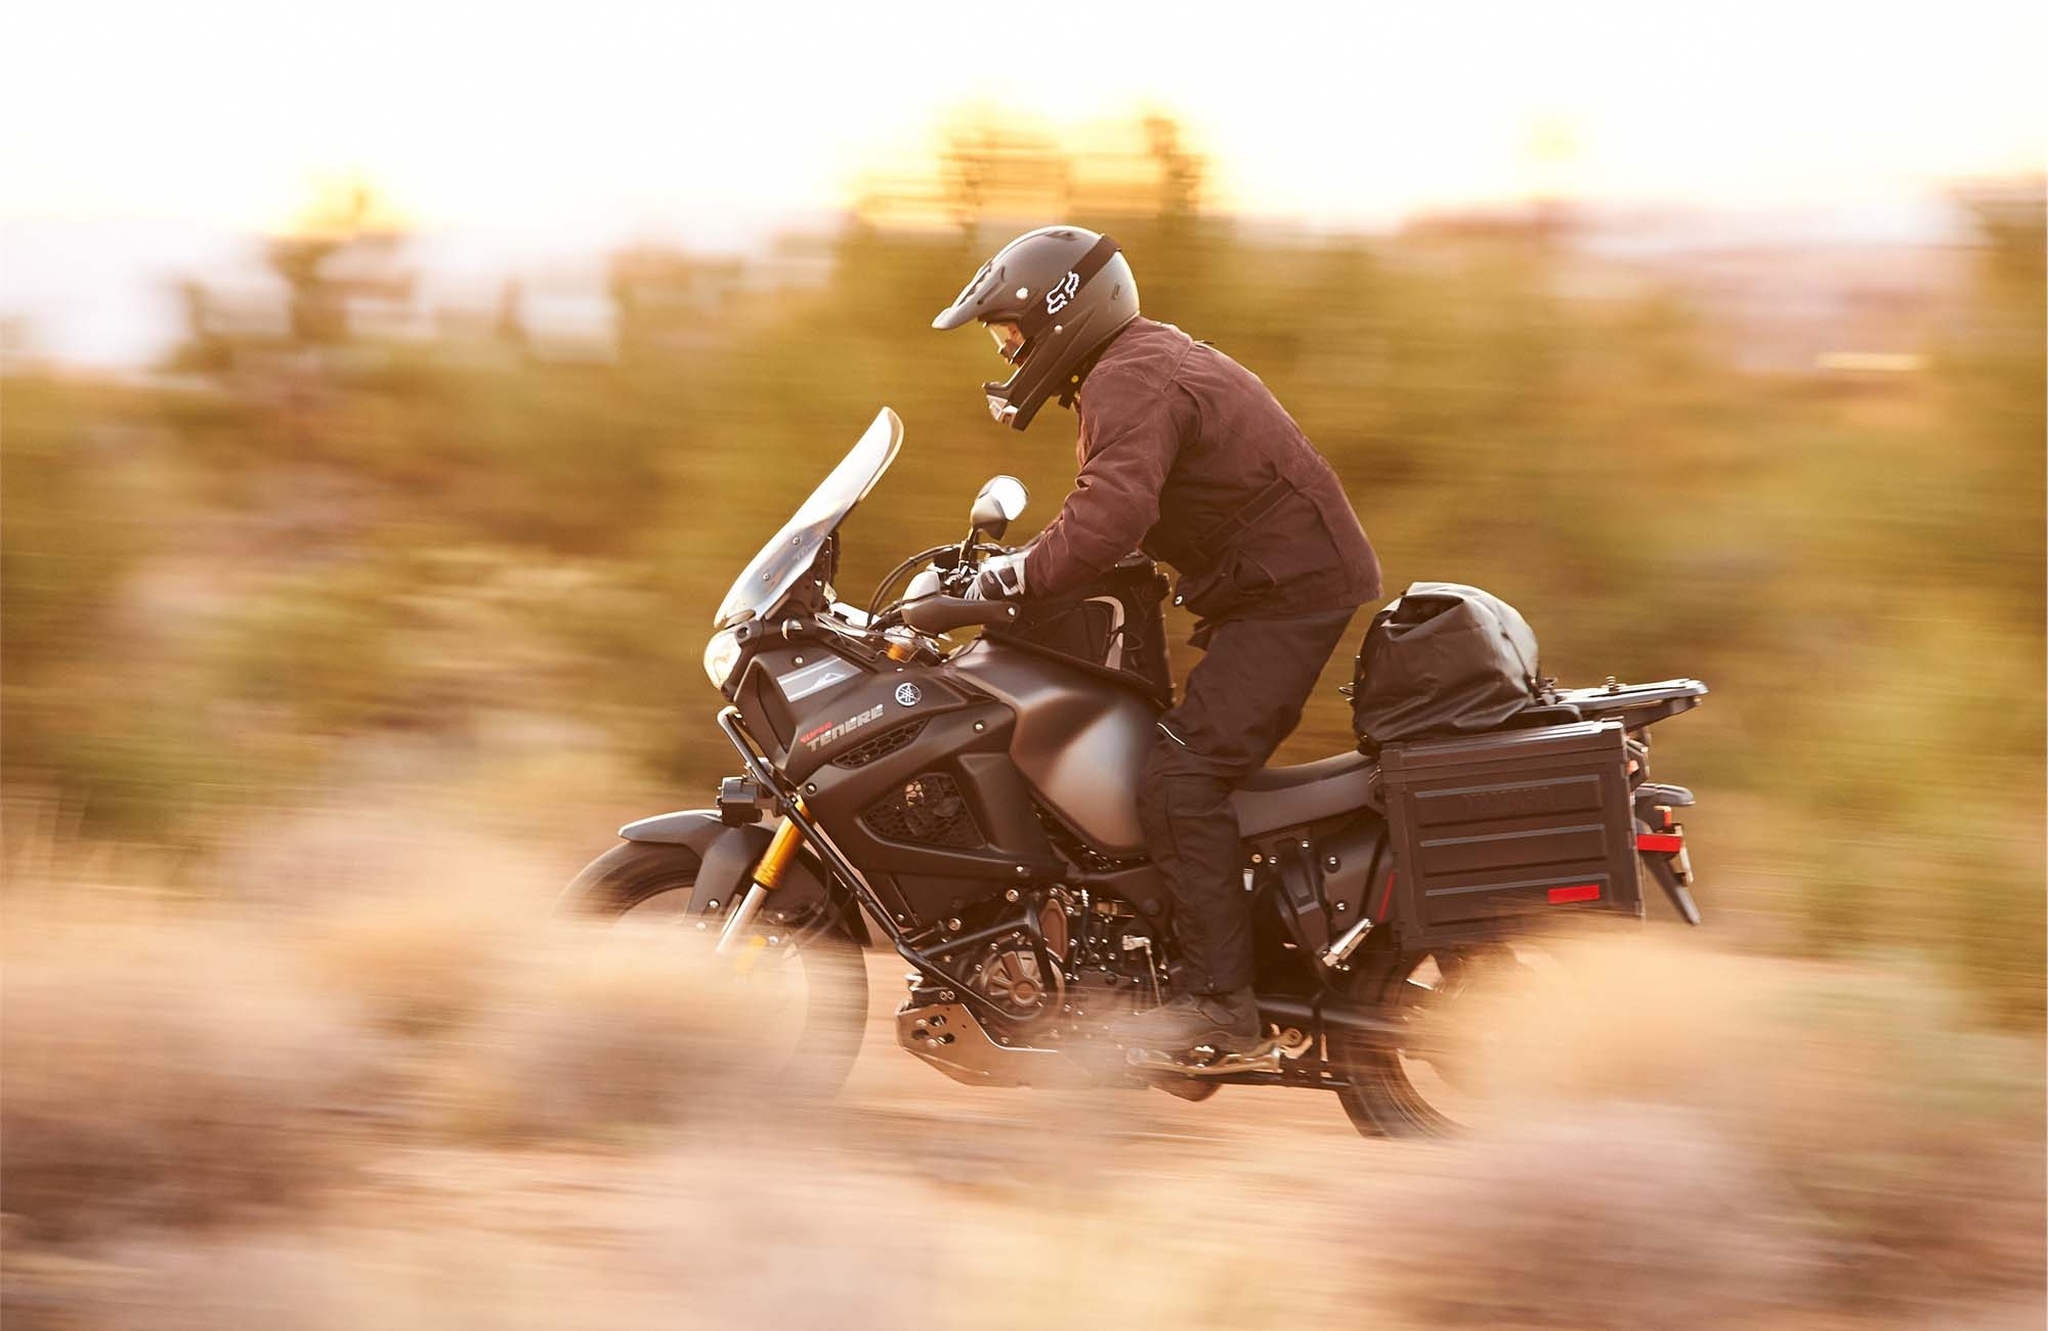 2014 Yamaha XT1200Z Super Tenere ES Arrives in the US, Price Announced